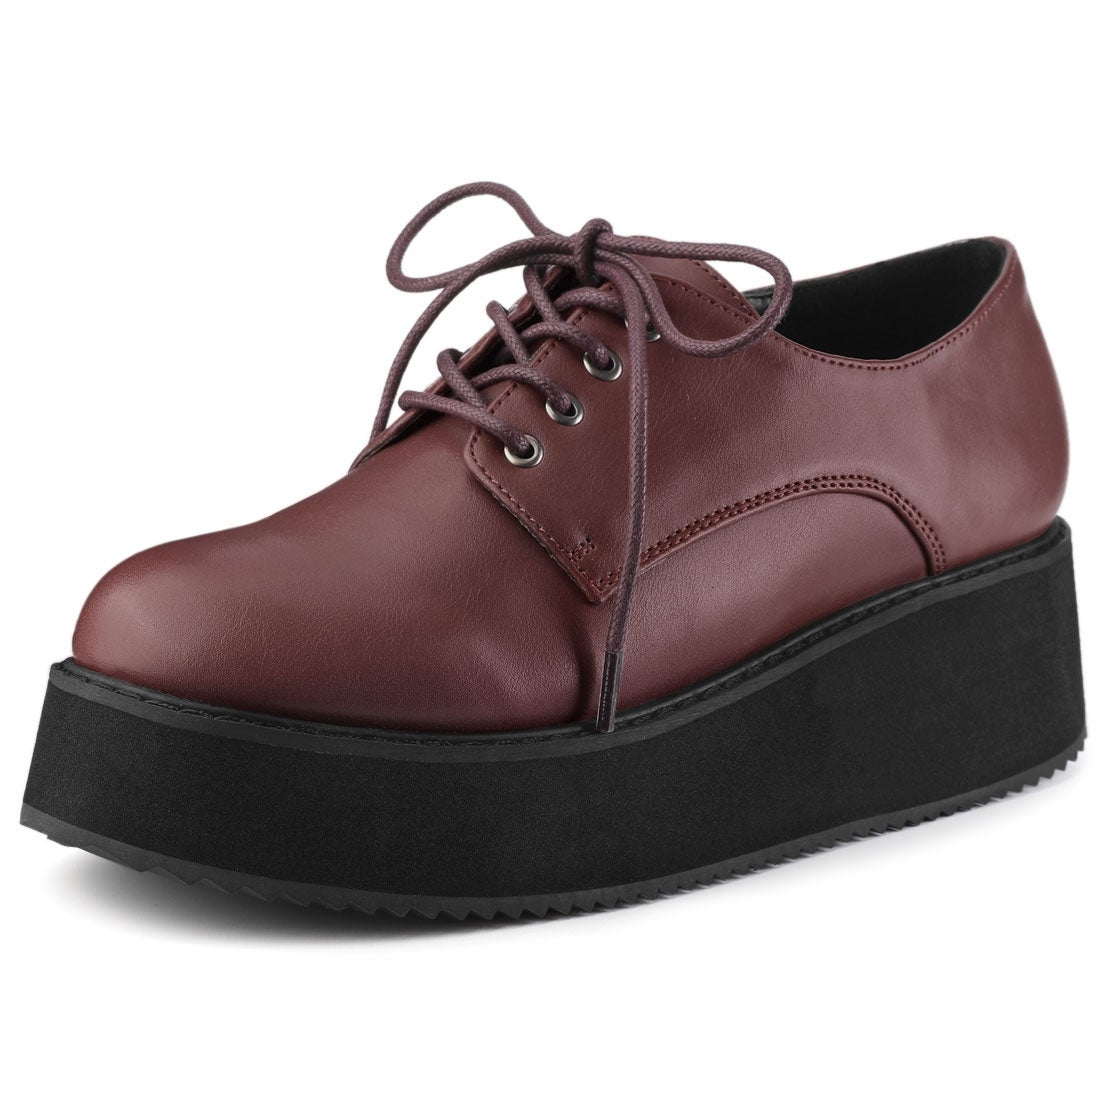 Round Toe Lace Up Flatform Oxford Shoes